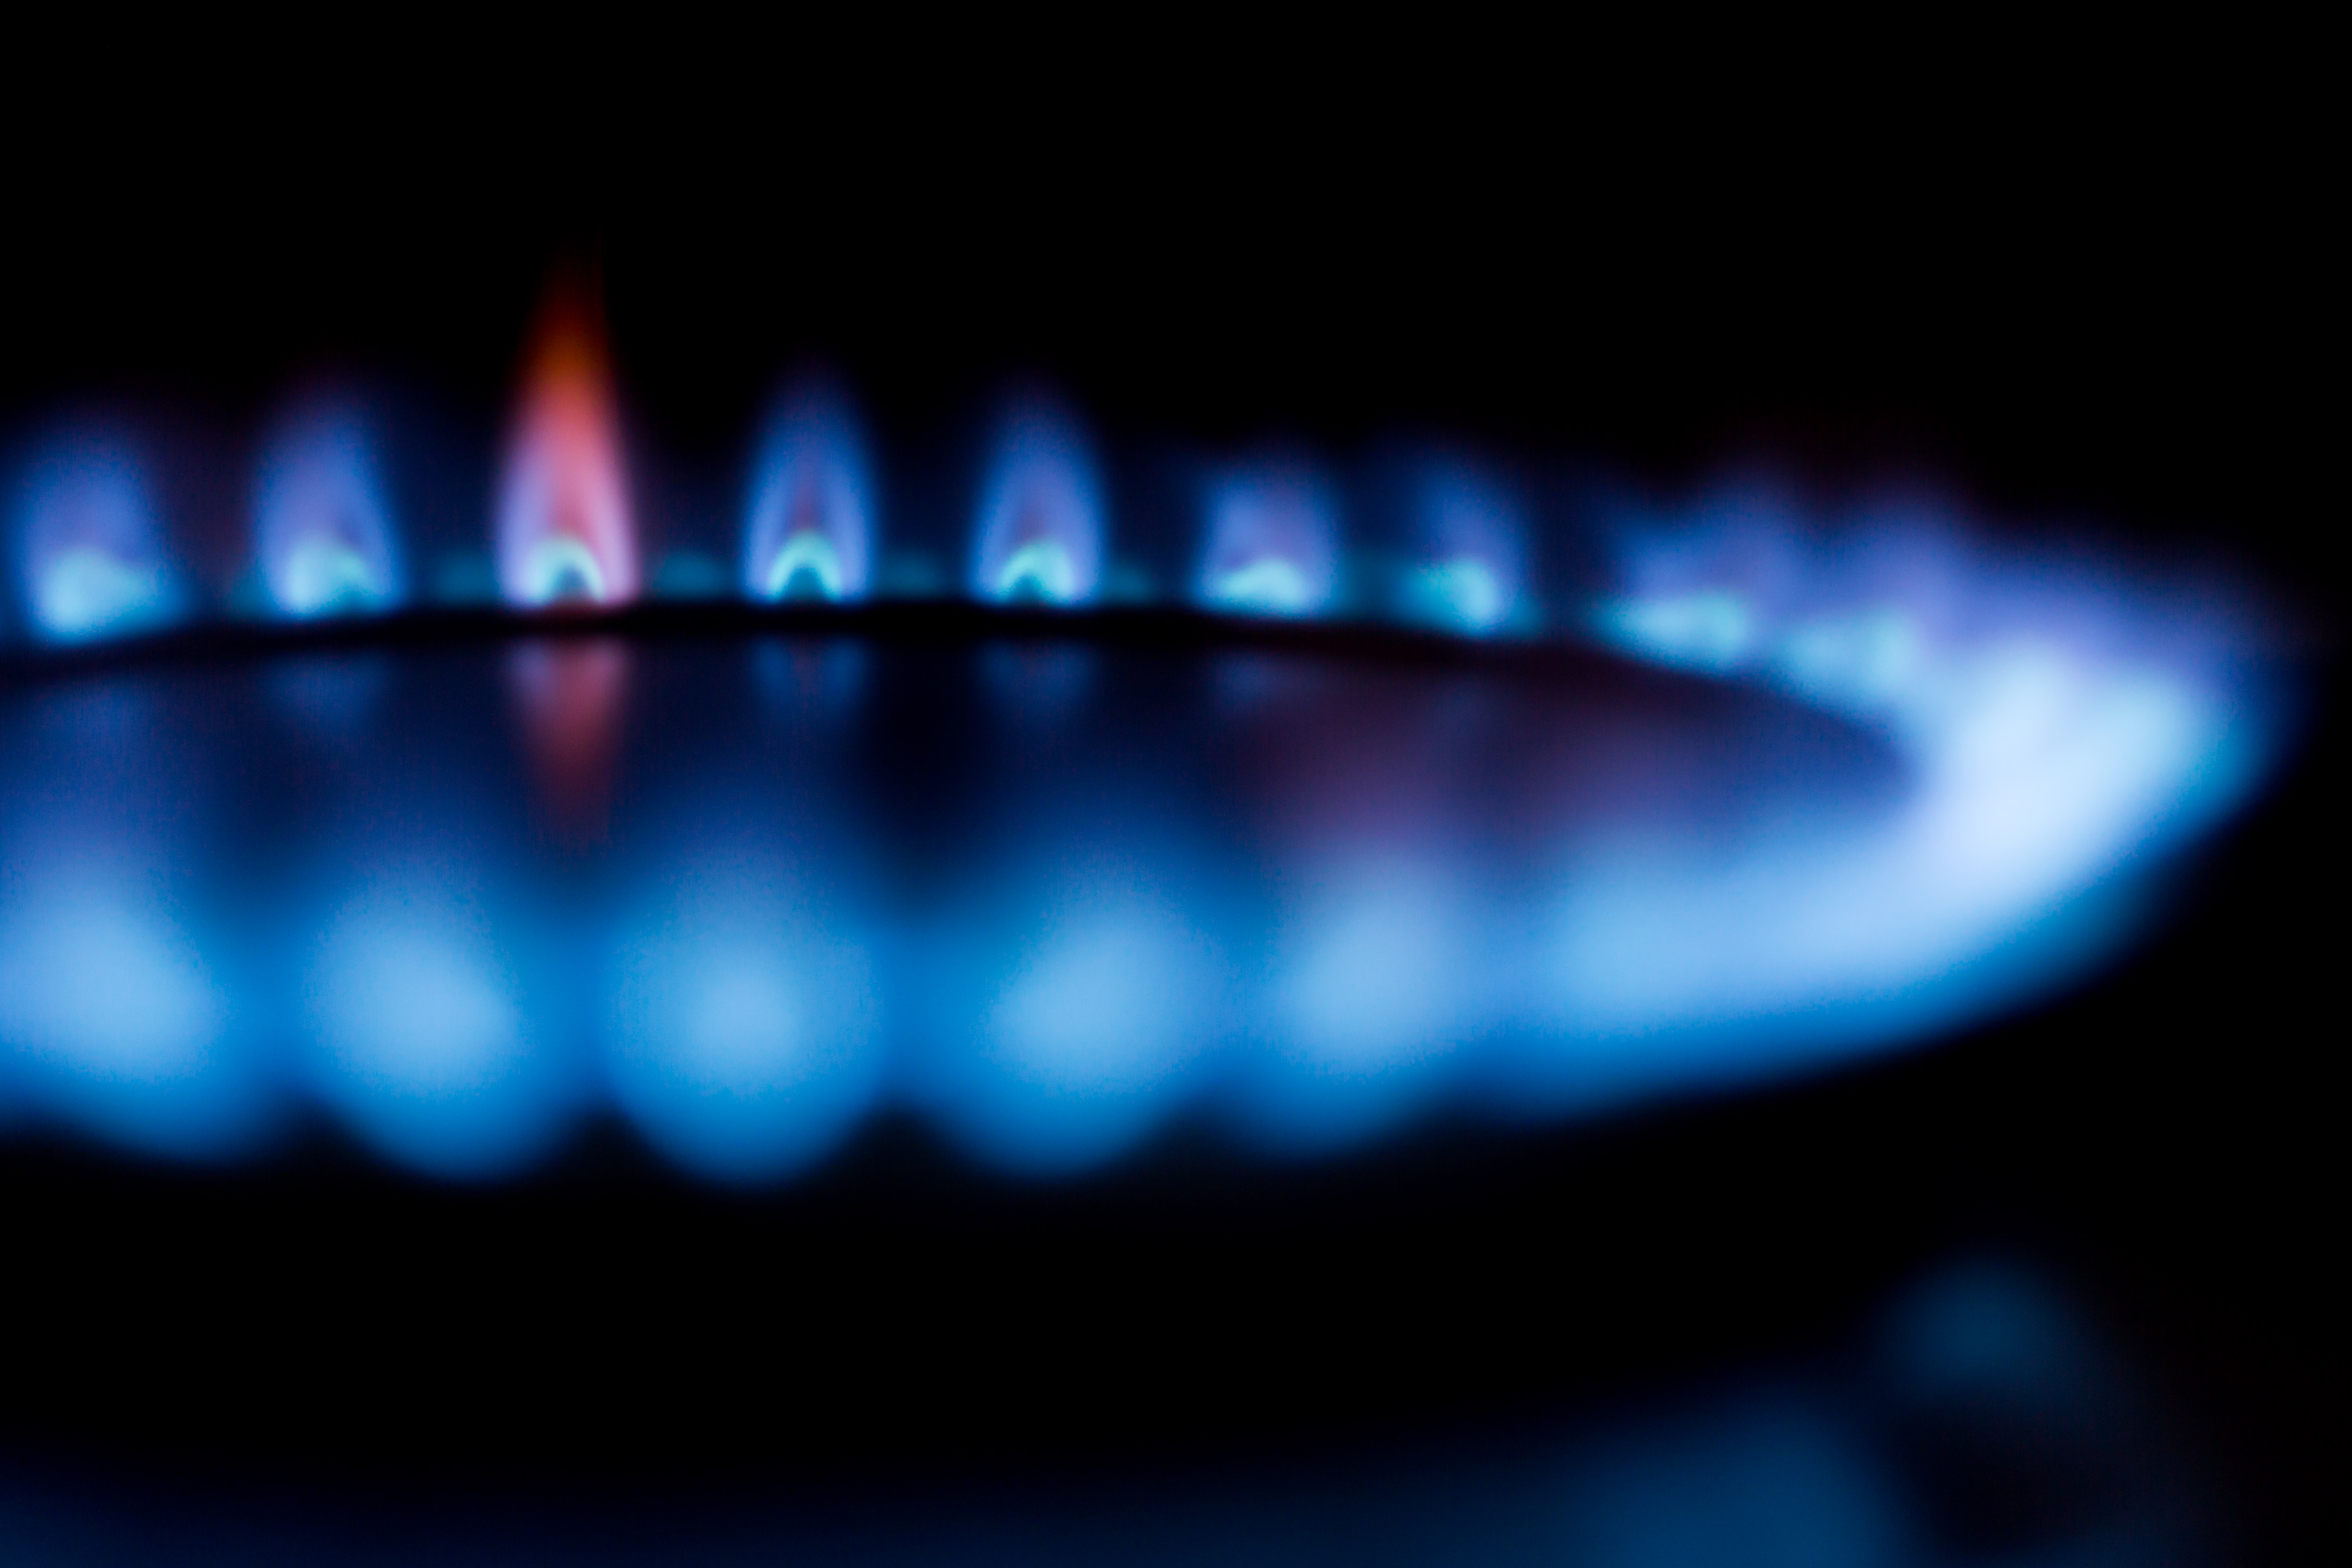 Free Download  sc 1 st  Pexels & Close Up Photography of Stove Fire · Free Stock Photo azcodes.com